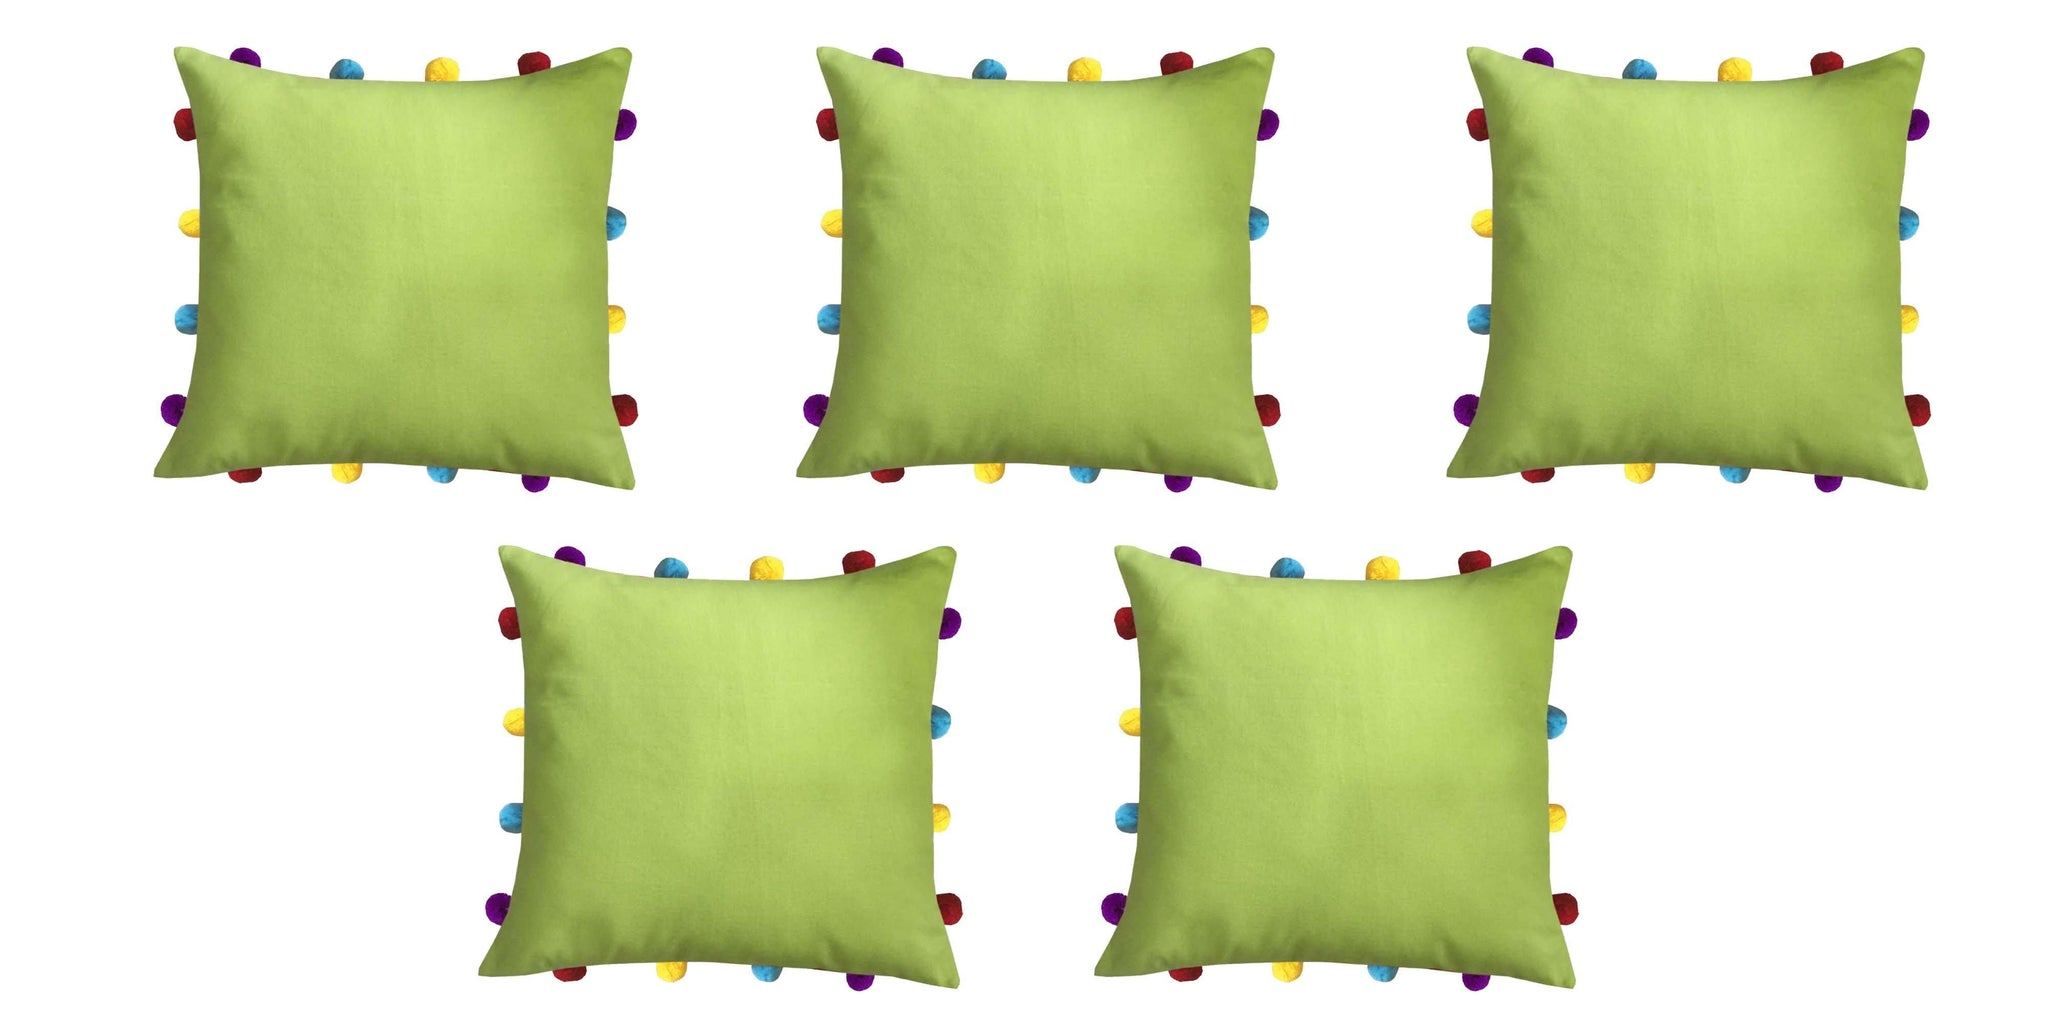 "Lushomes Palm Cushion Cover with Colorful pom poms (5 pcs, 14 x 14"") - Lushomes"